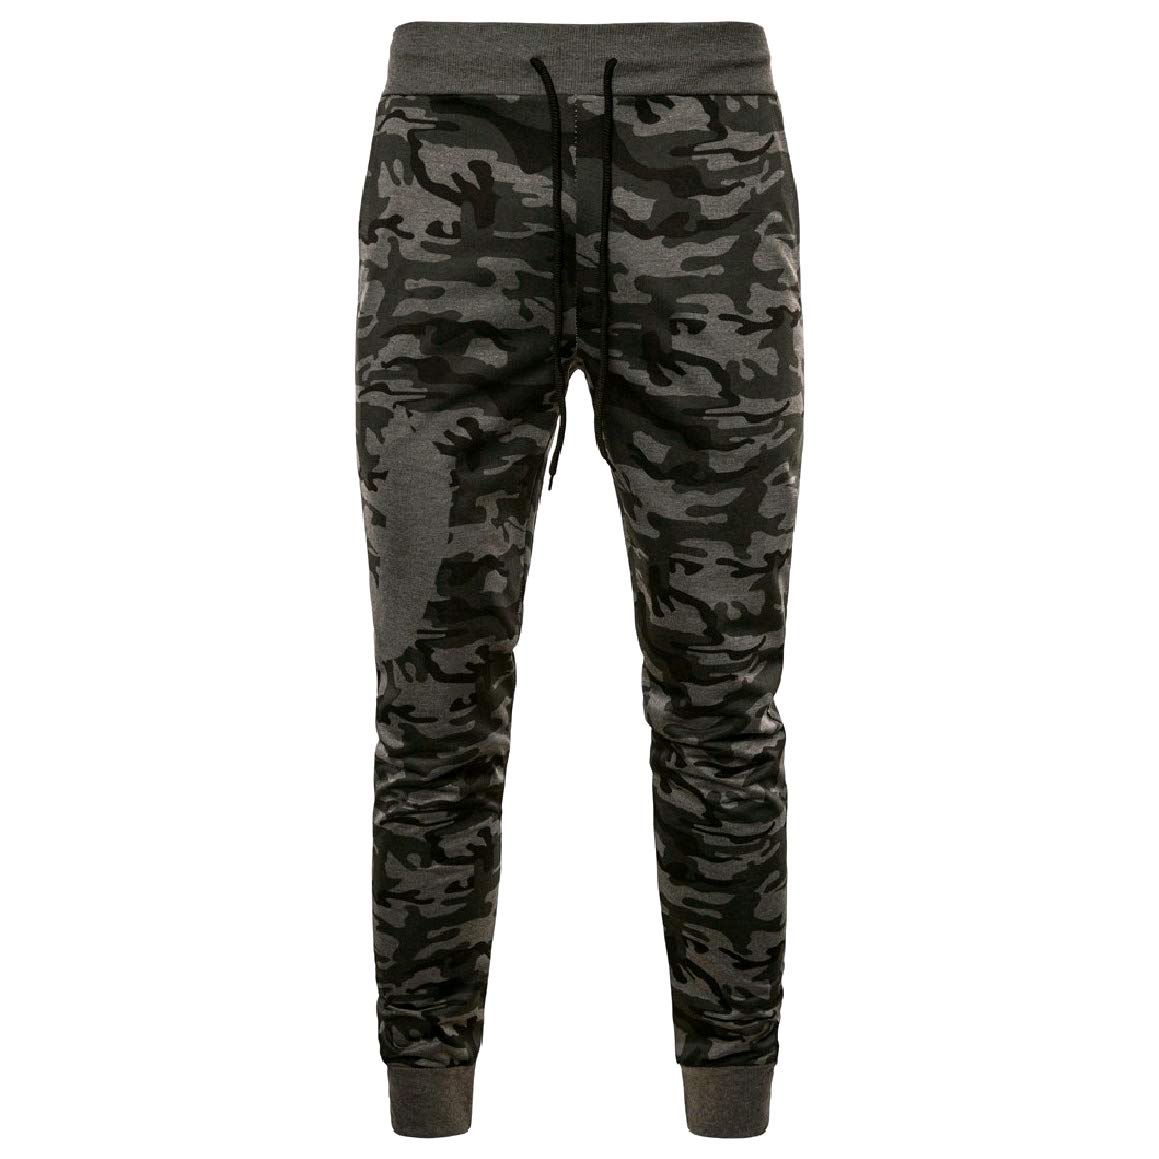 Romantc Mens Elastic Bottom Juniors Oversize Camo Trousers Pants